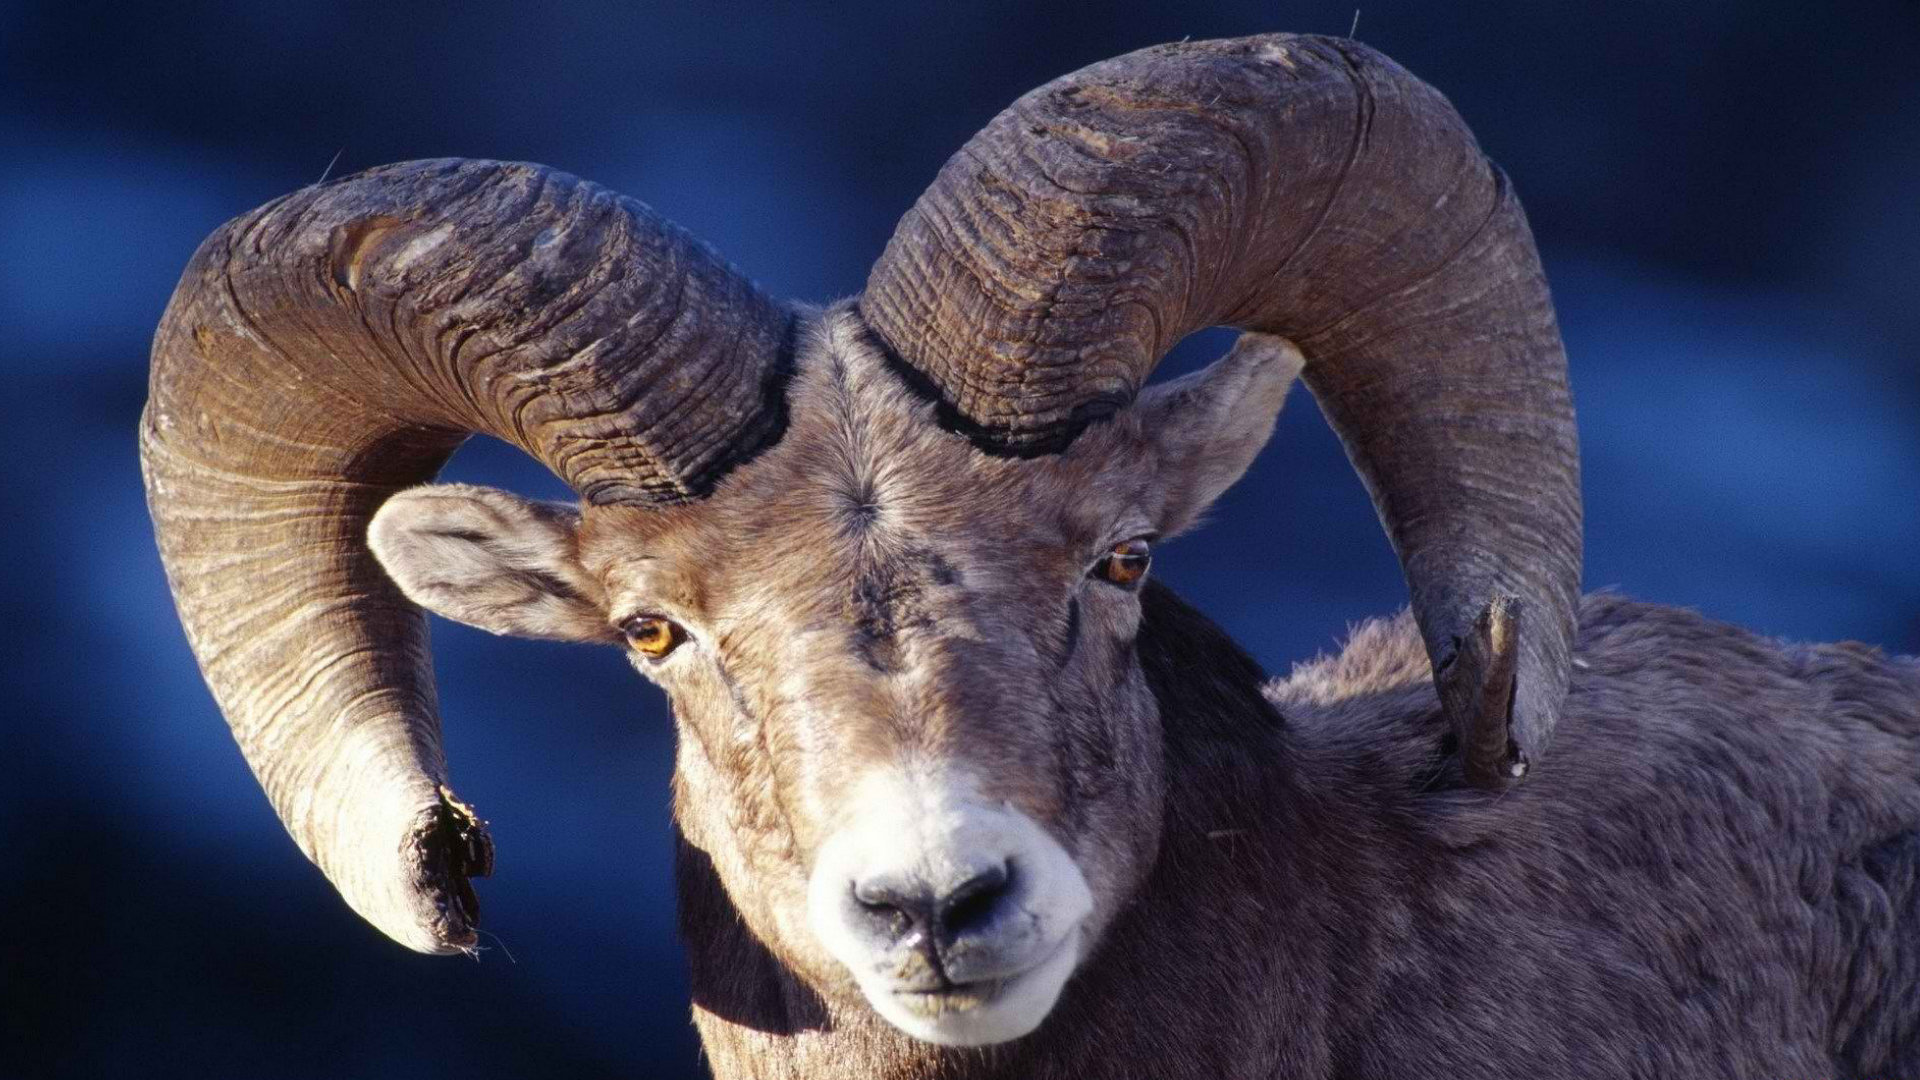 Download full hd 1080p Bighorn Sheep computer background ID:445221 for free